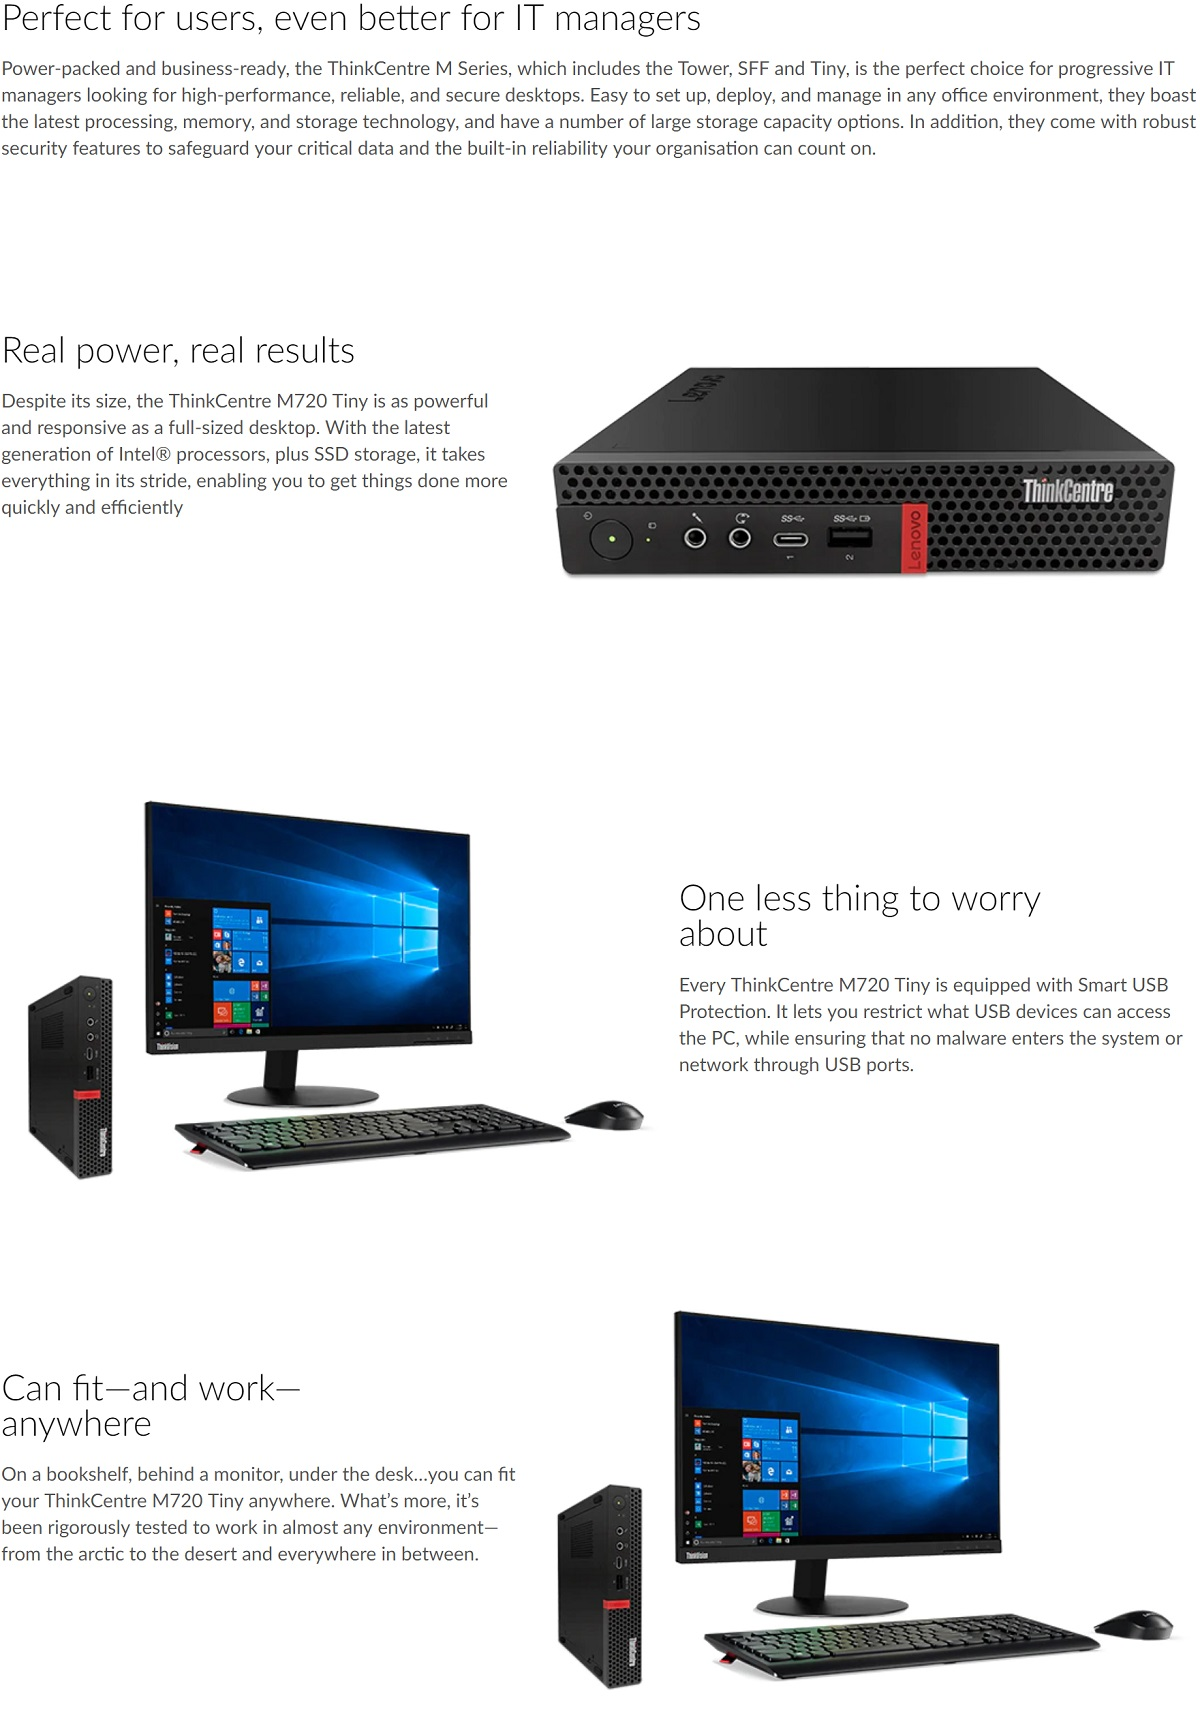 Lenovo Thinkcentre M720 Tiny